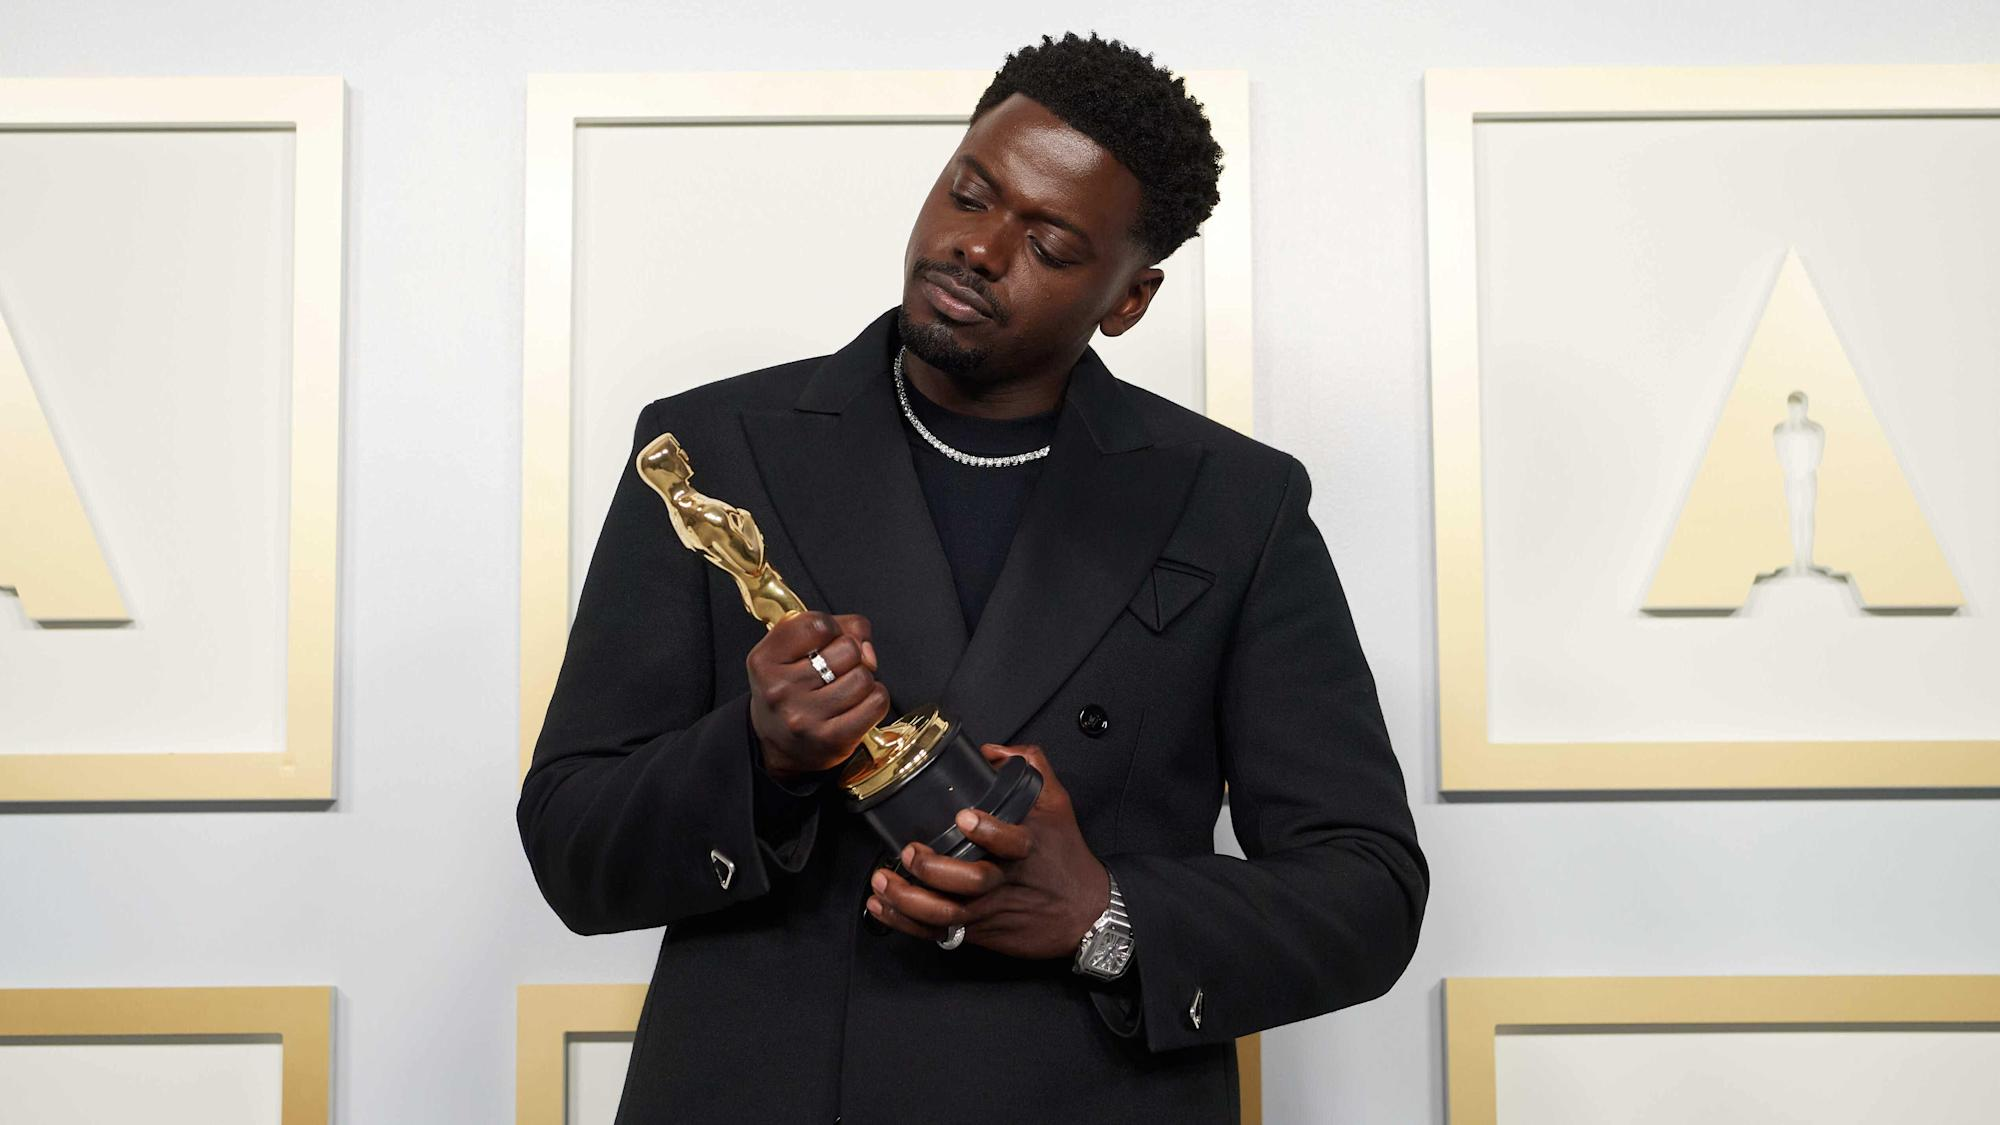 Daniel Kaluuya's historic Oscars win 'will mean so much to so many'